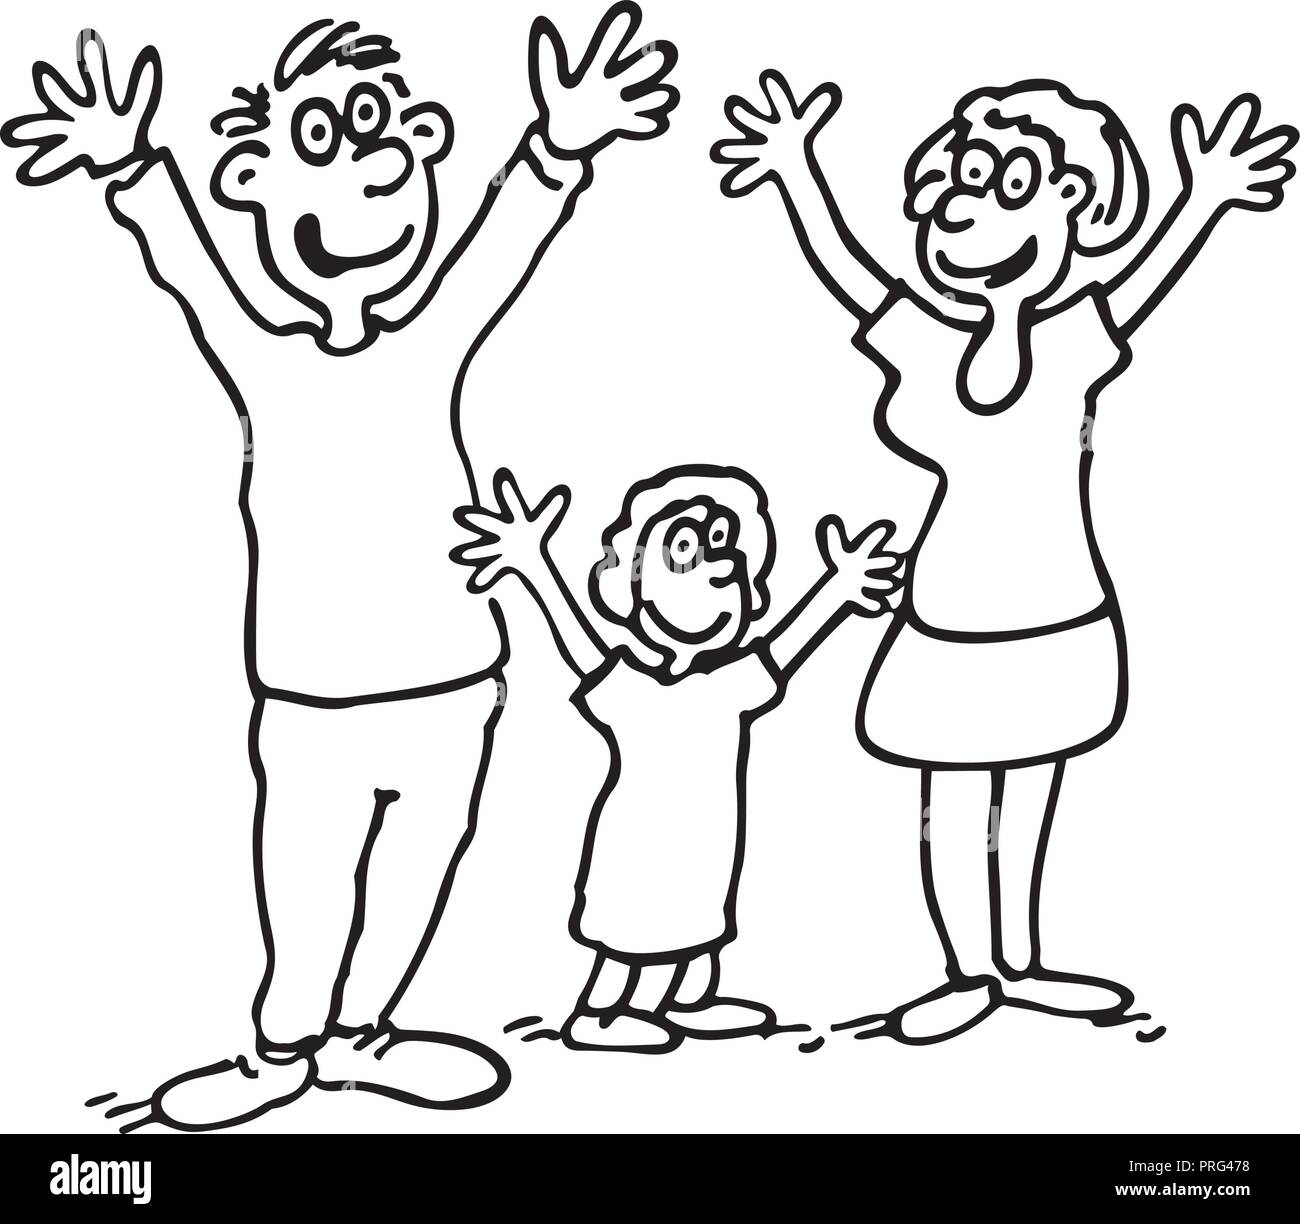 Vector Doodle Of Happy Family Outlined Cartoon Drawing Sketch Illustration Vector Stock Vector Image Art Alamy